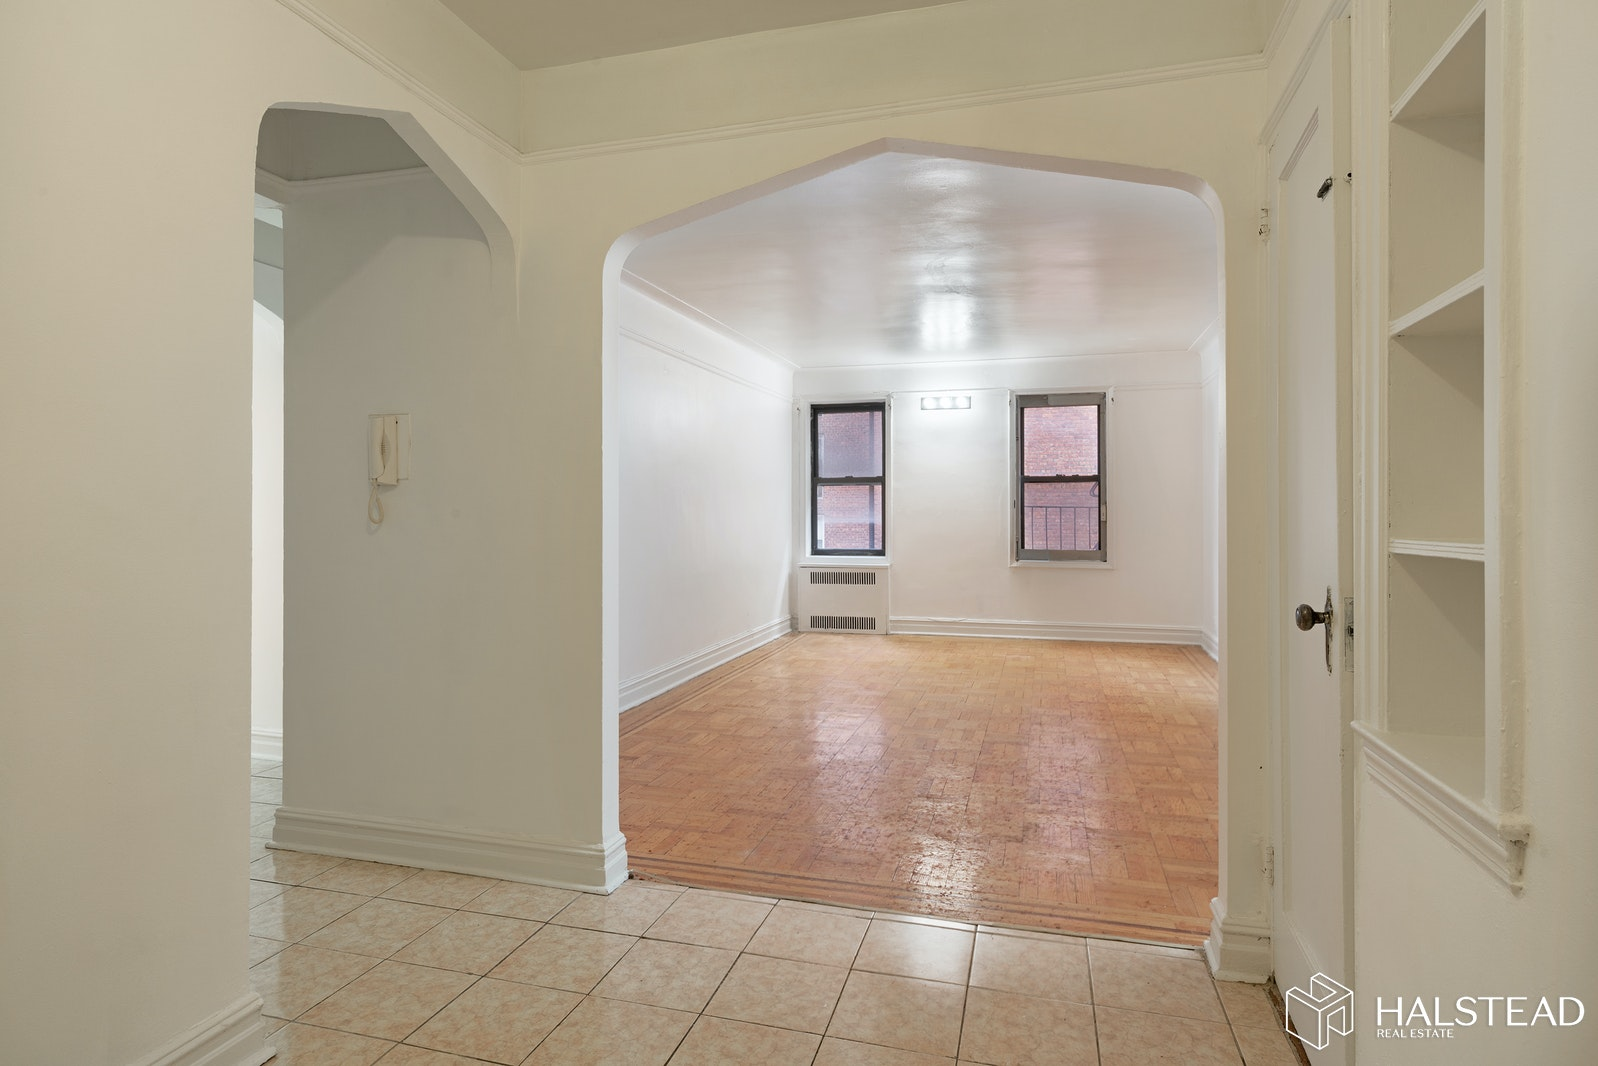 385 Argyle Road 2k, Ditmas Park, Brooklyn, NY, 11218, $425,000, Property For Sale, Halstead Real Estate, Photo 4